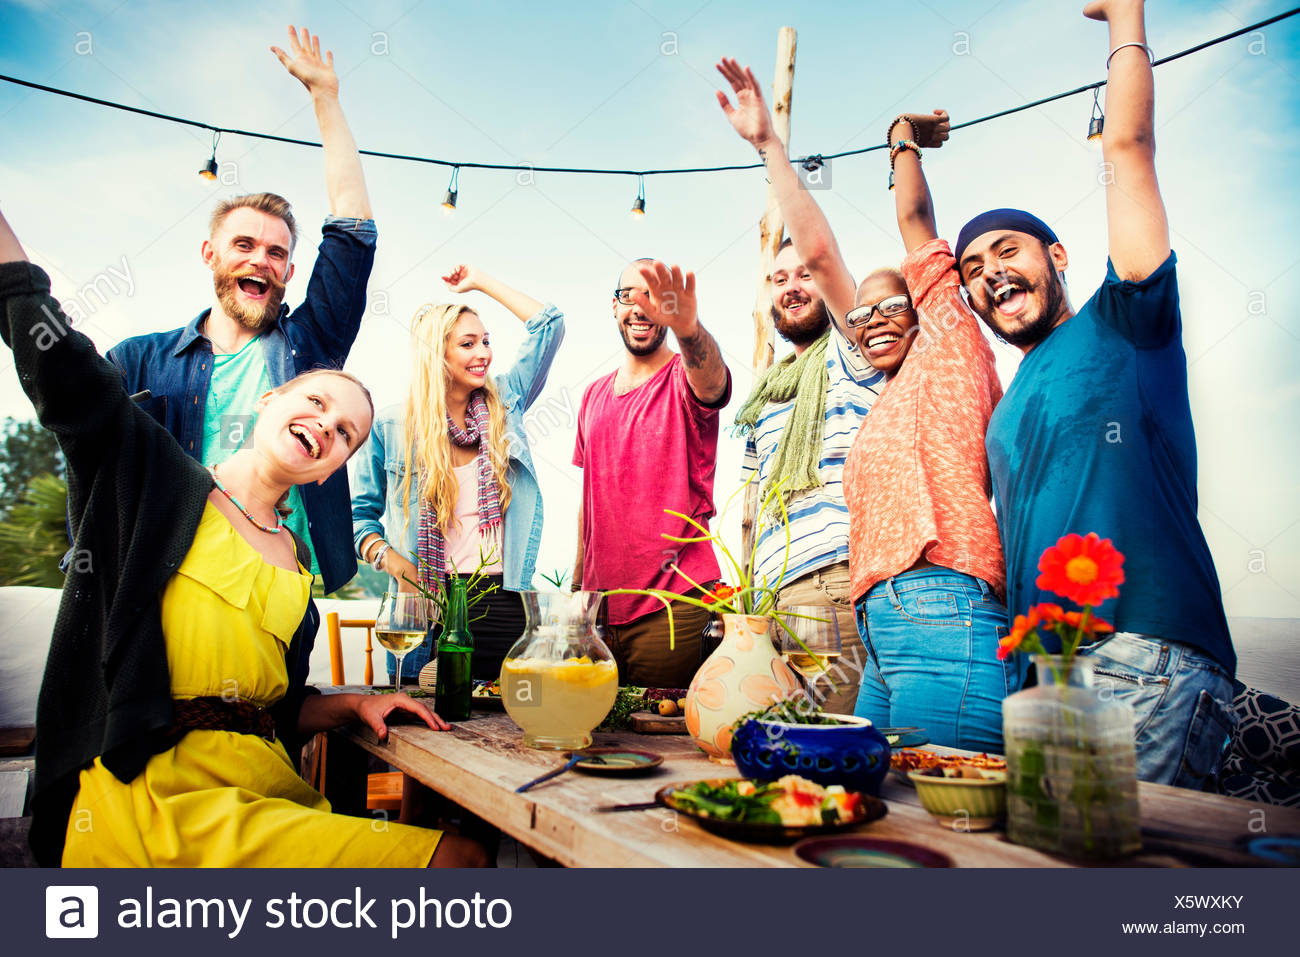 Strand Sommer Dinner Party Feier Konzept Stockbild